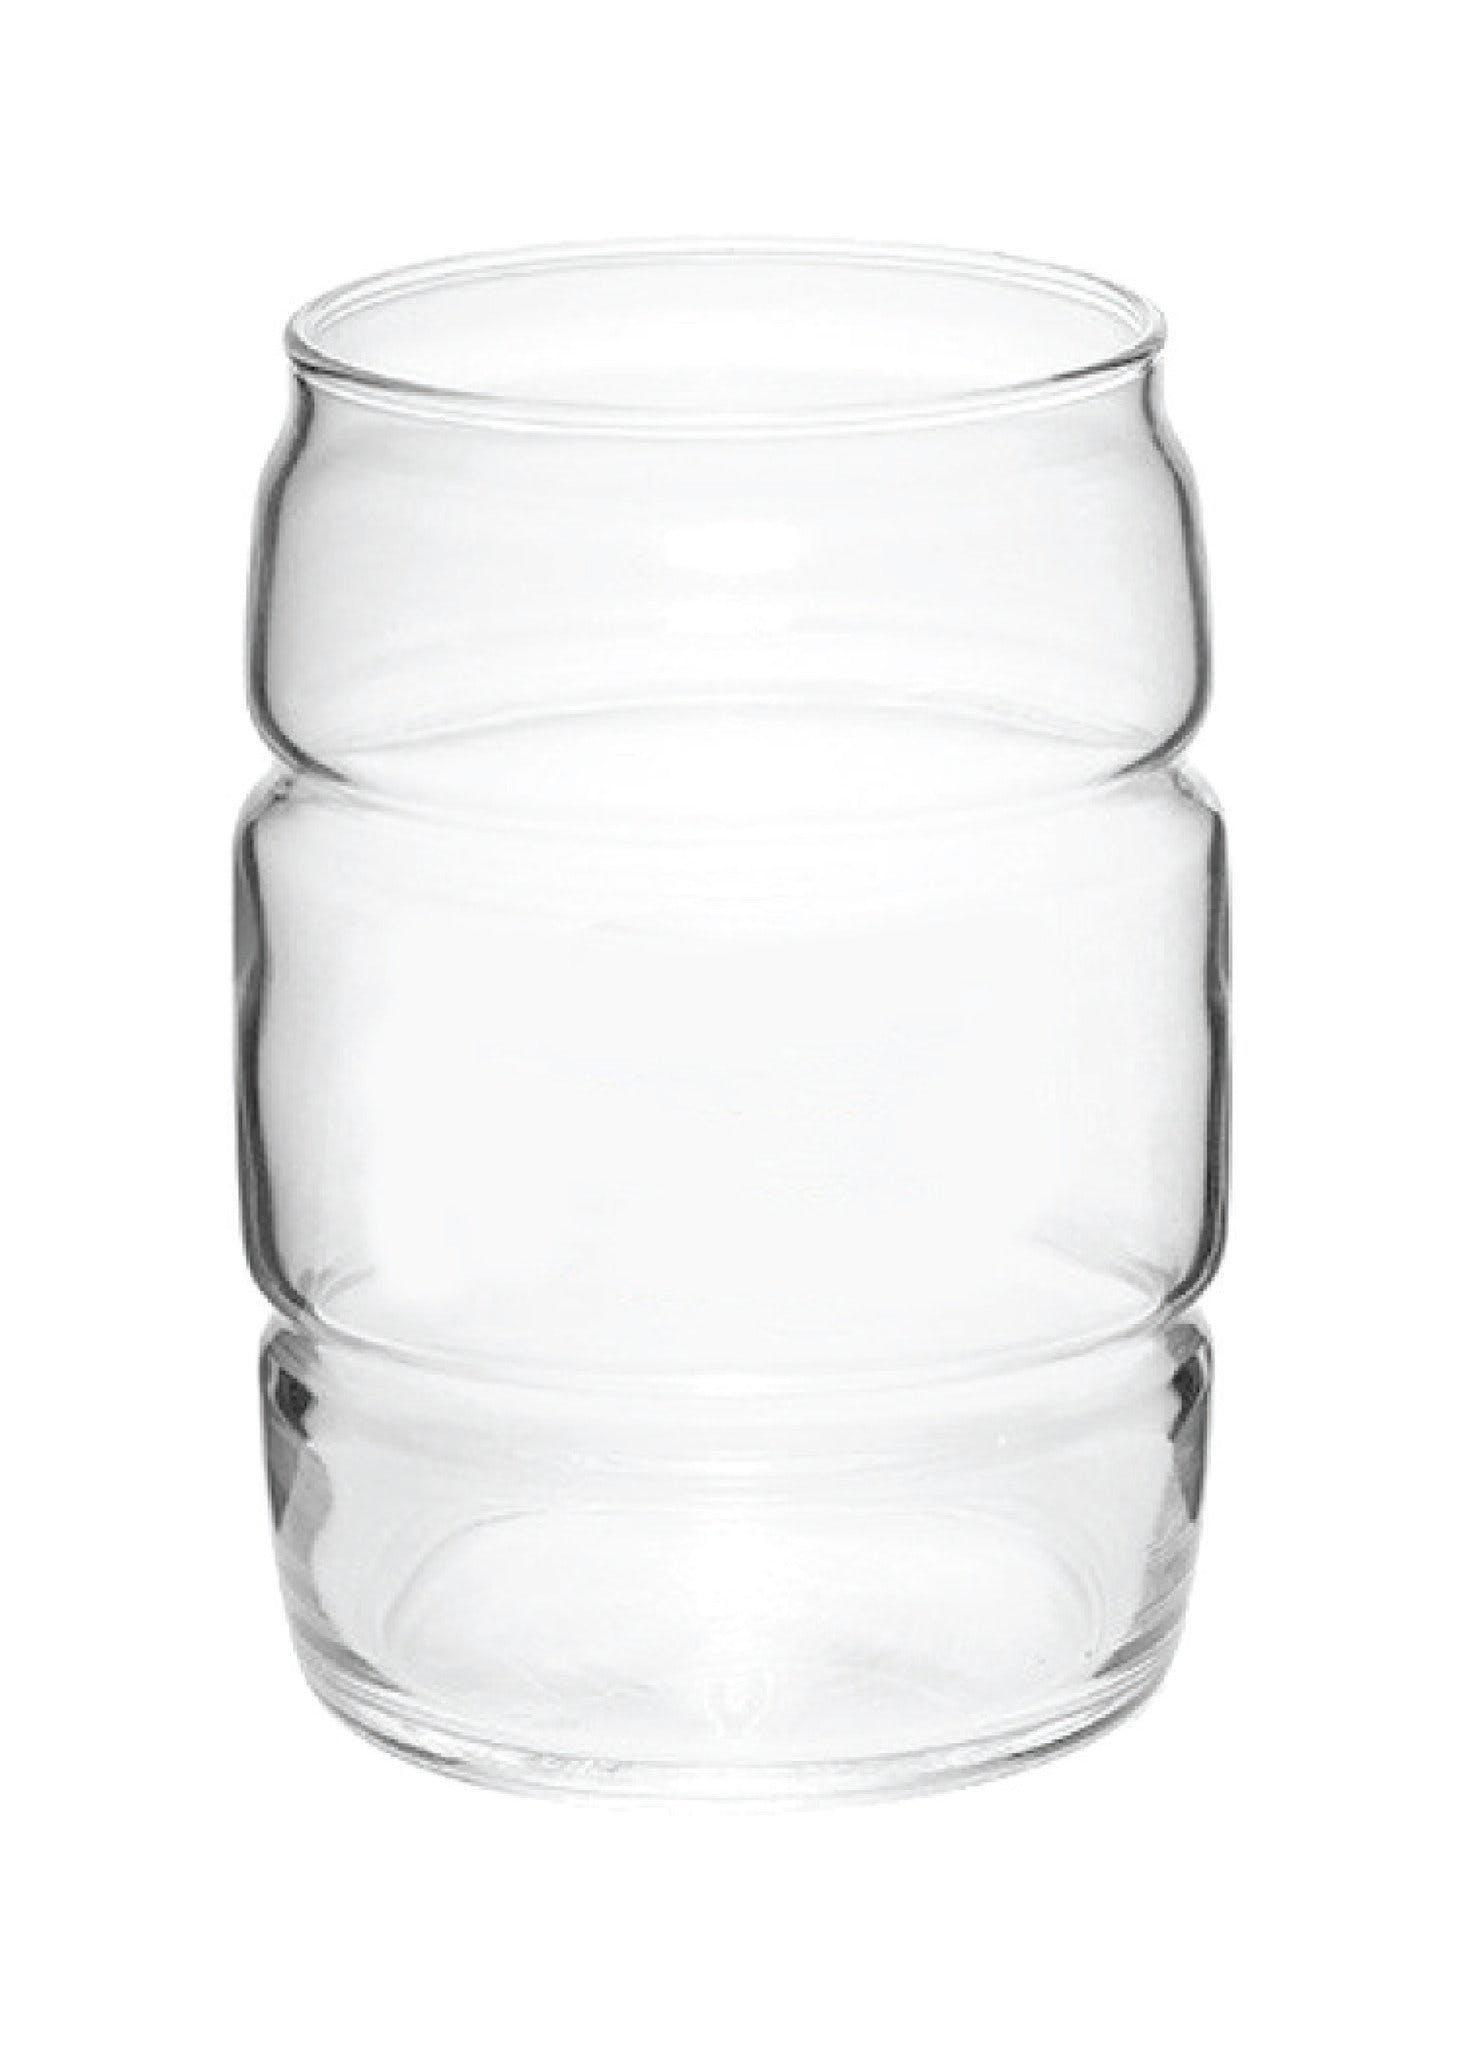 16 oz. Barrel Can Glass #638 - sold by Clearwater Gear